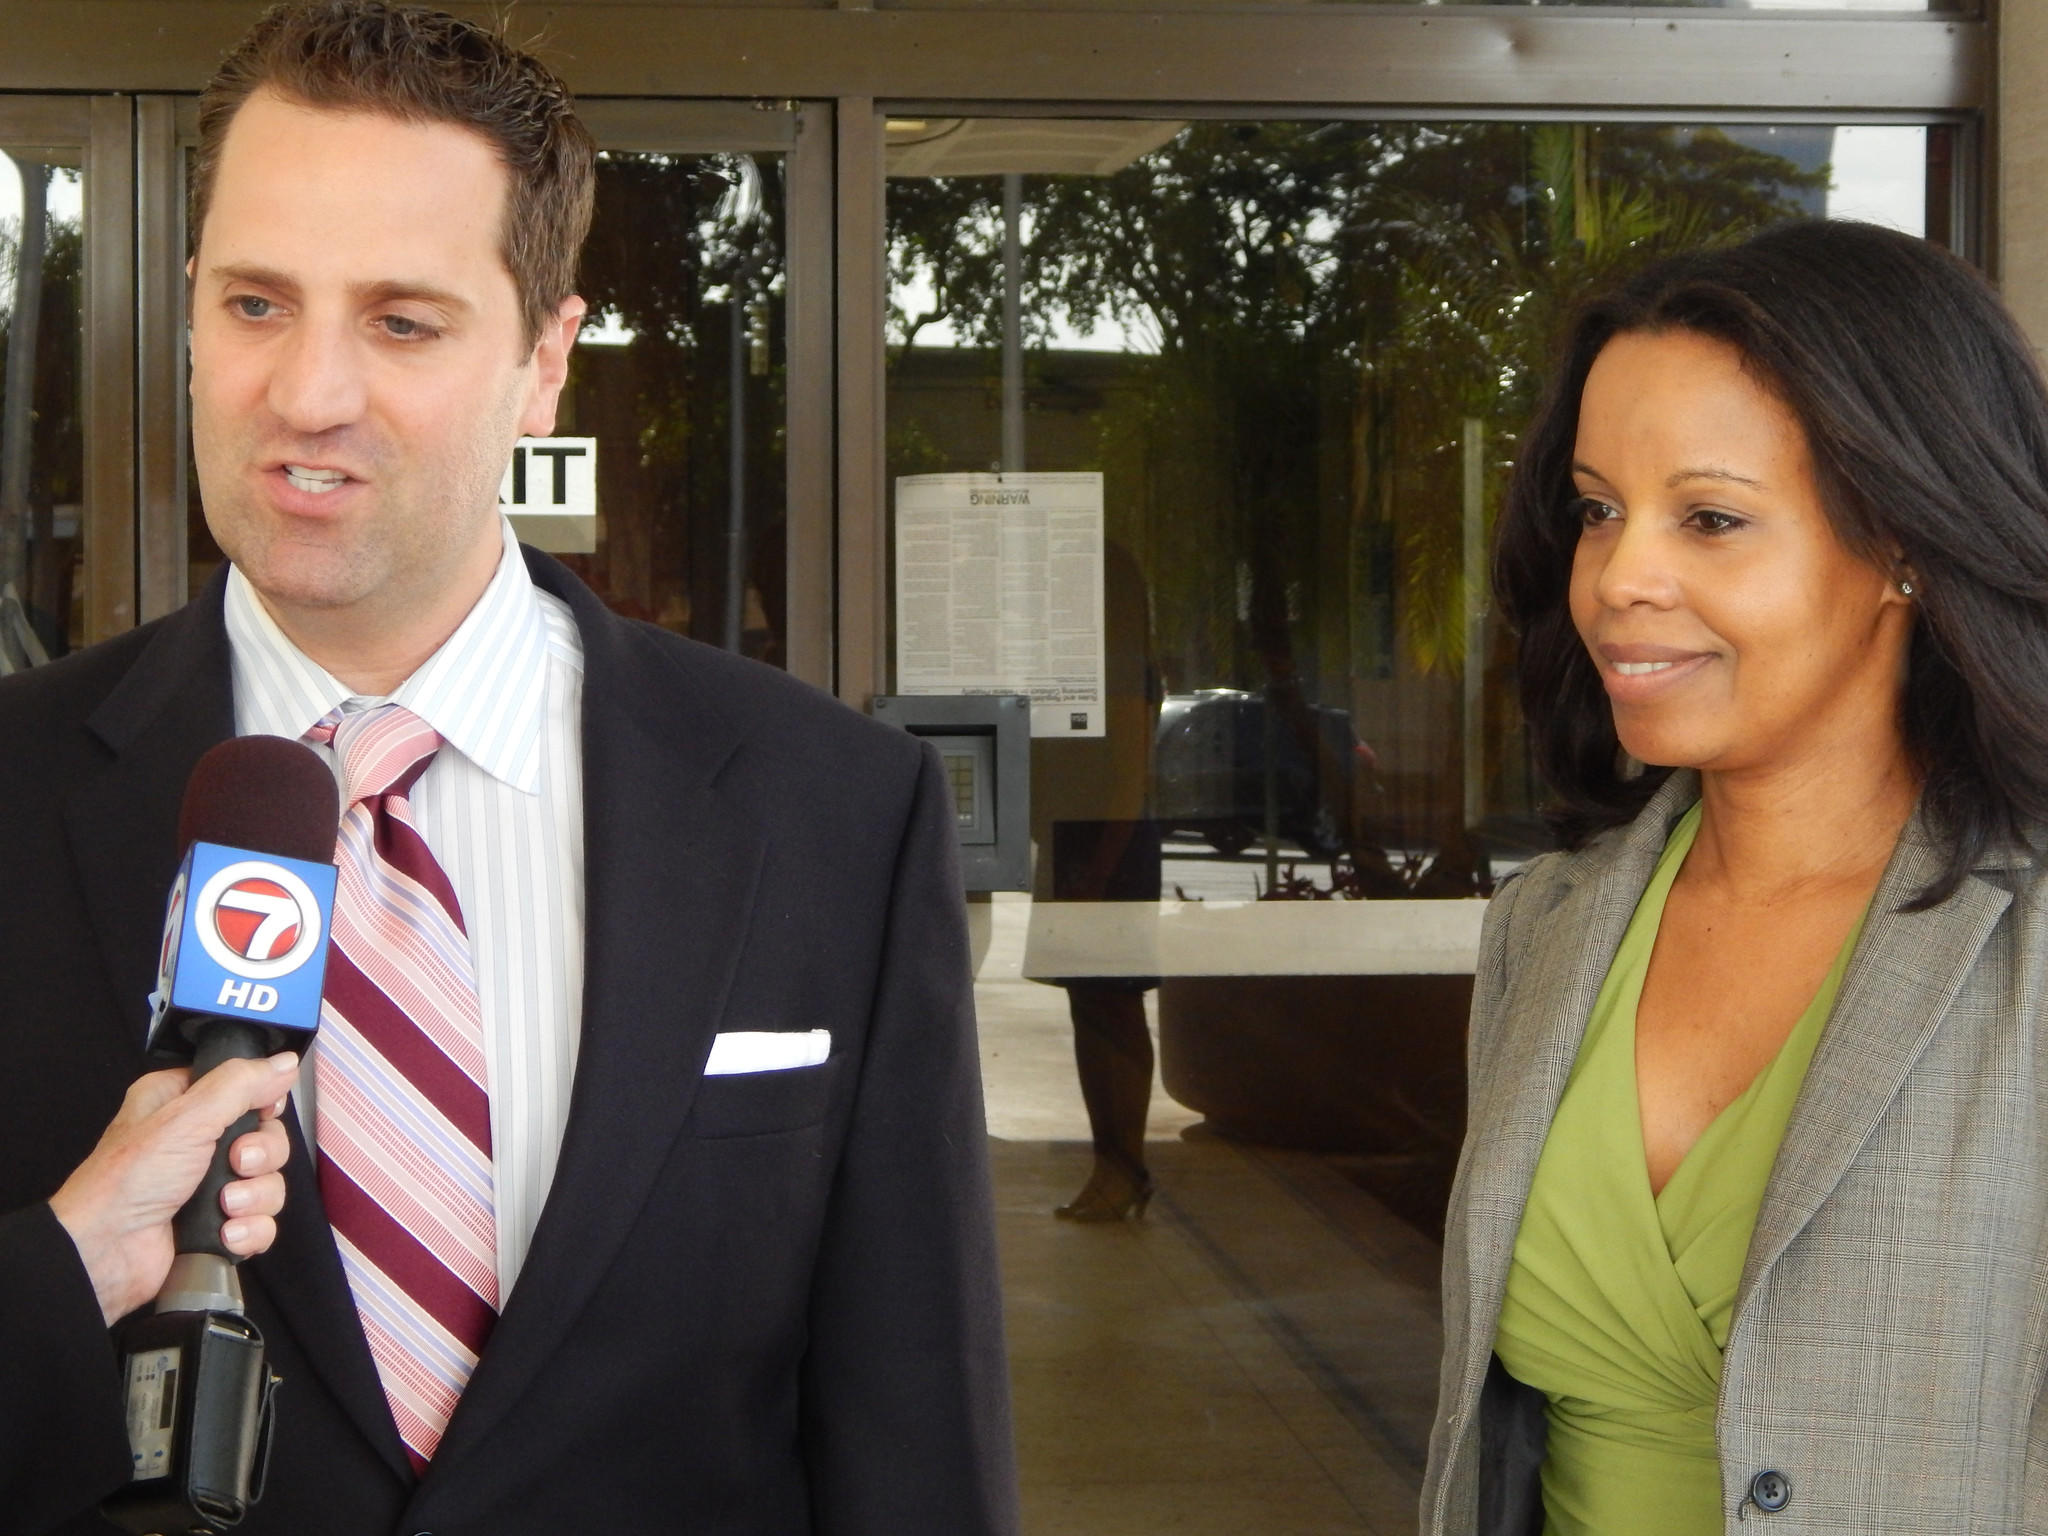 Dr. Cynthia Cadet, of Parkland, was sentenced to 6 1/2 years in federal prison Friday for money laundering connnected to her employment at pill mills in Broward and Palm Beach County. She is shown in this 2013 photo with her defense lawyer Michael D. Weinstein Rafael Olmeda, Sun Sentinel